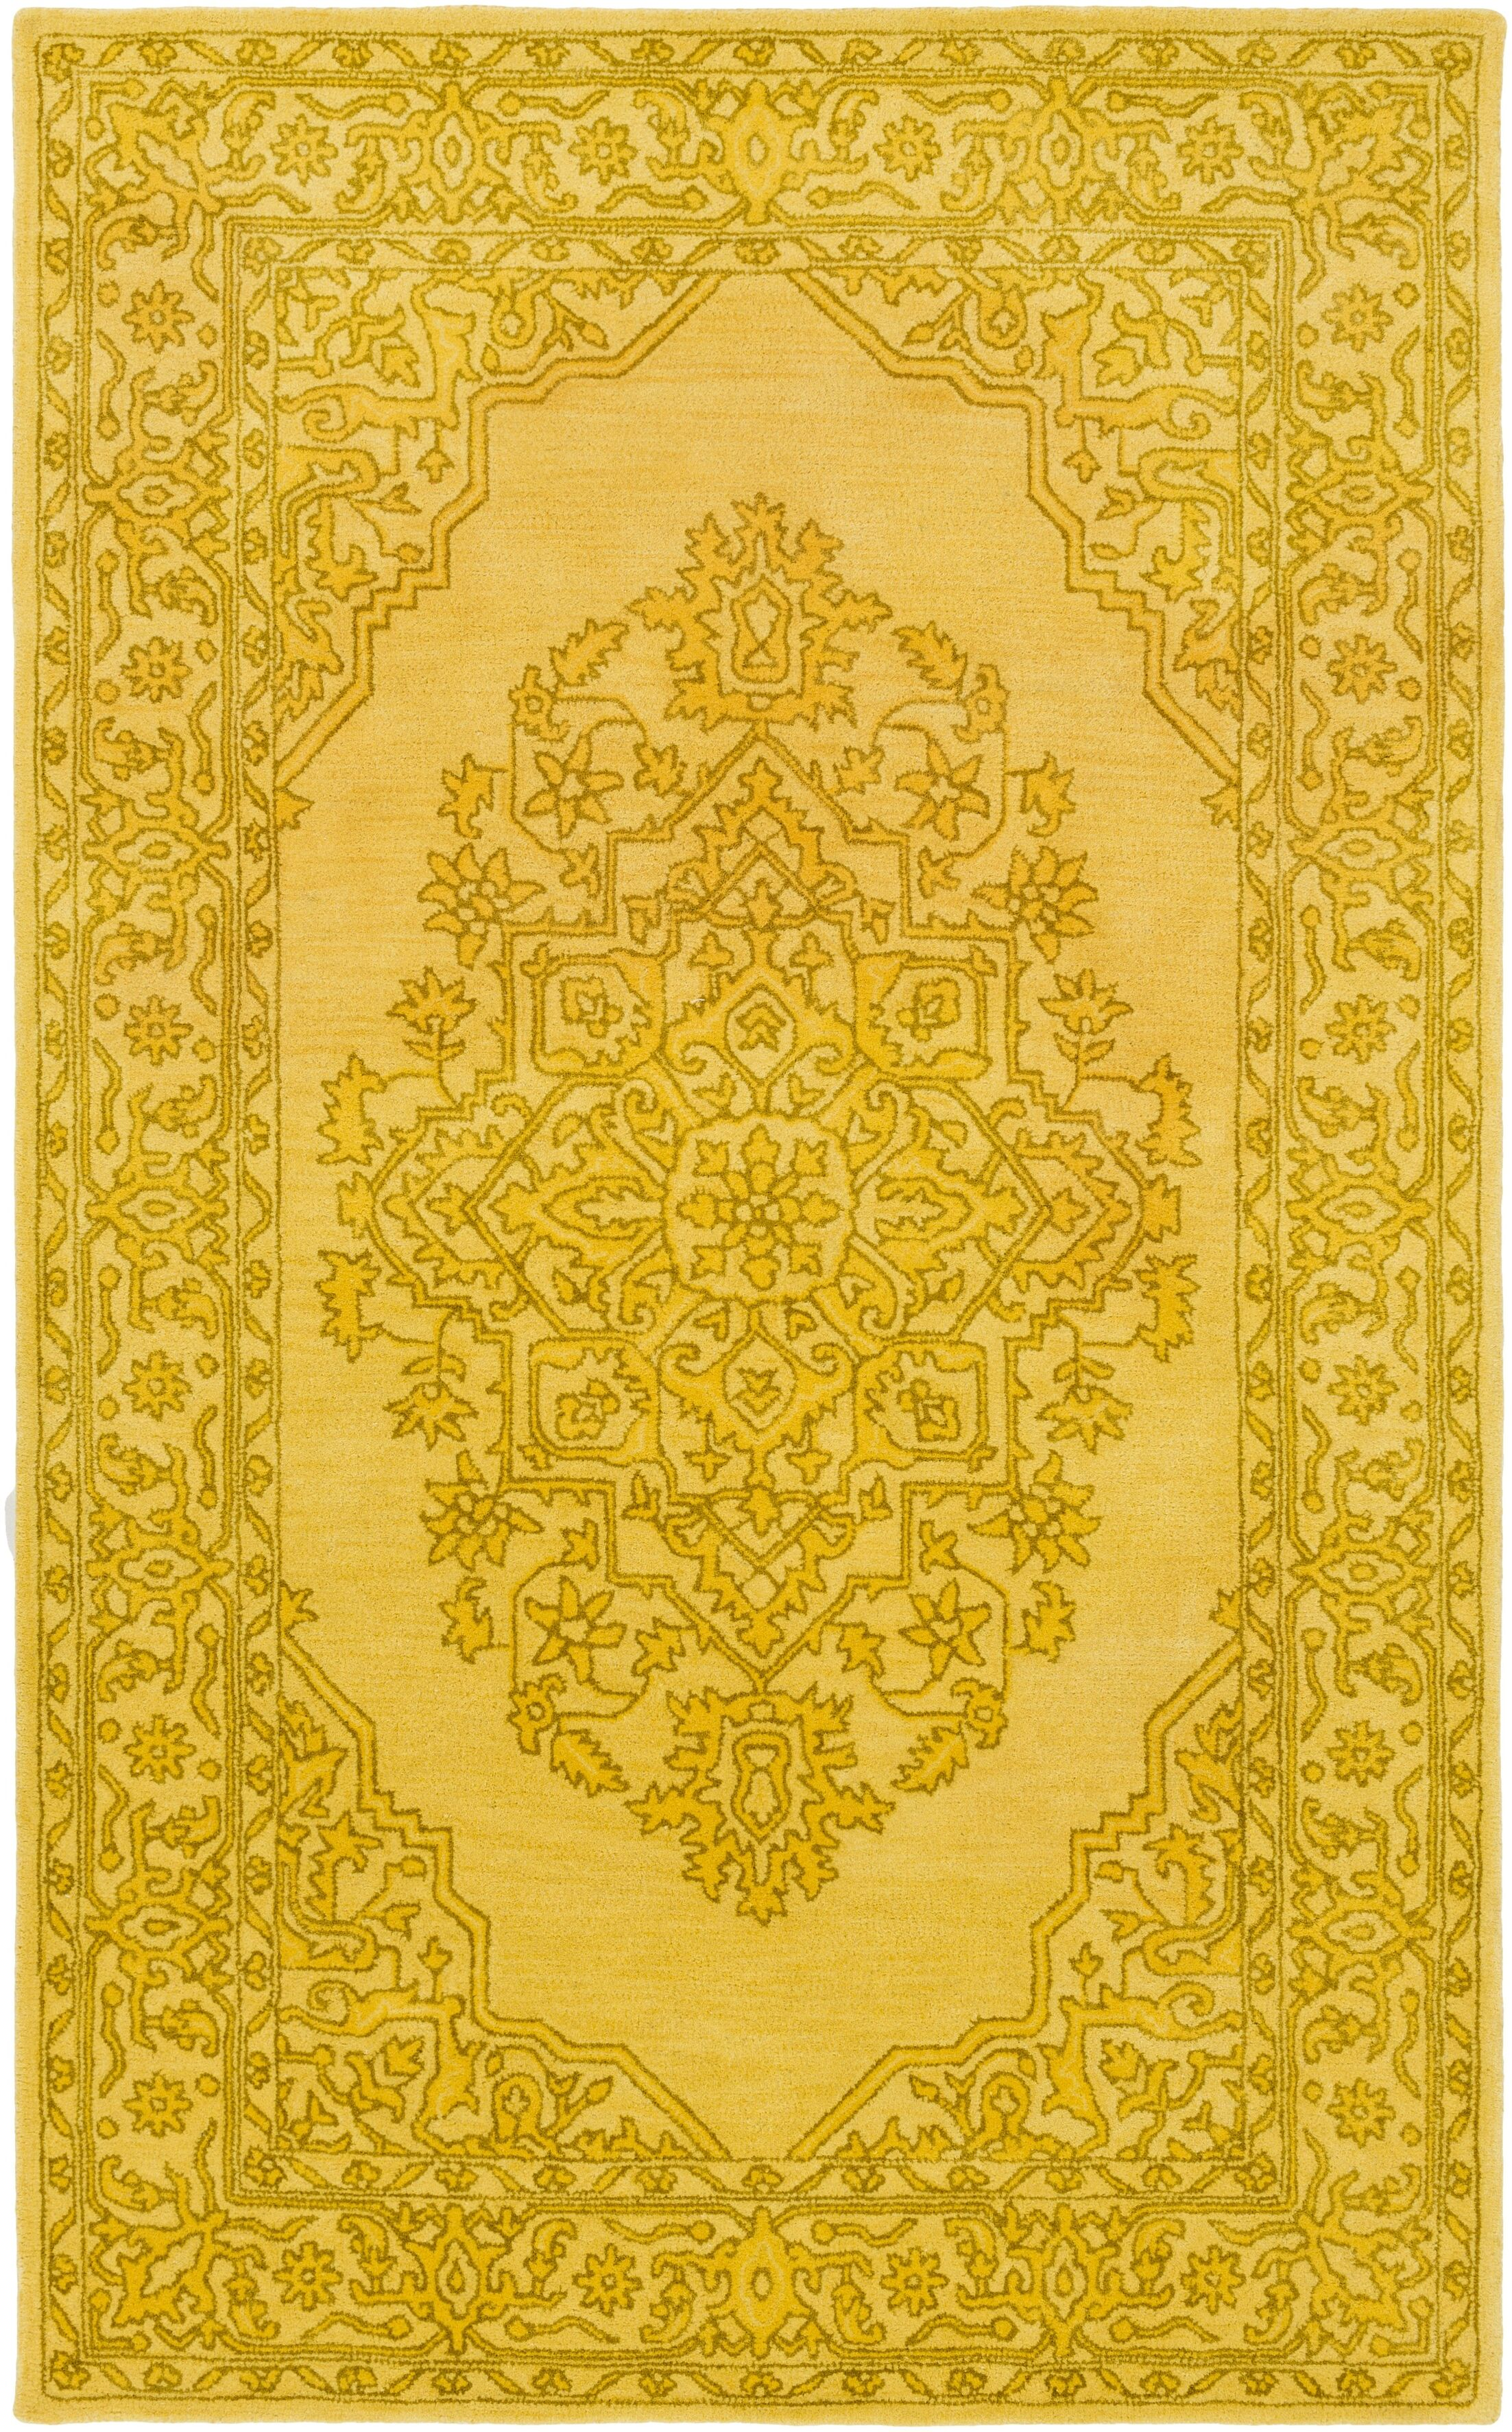 Farner Hand-Tufted Bright Yellow Area Rug Rug Size: Rectangle 9' x 13'